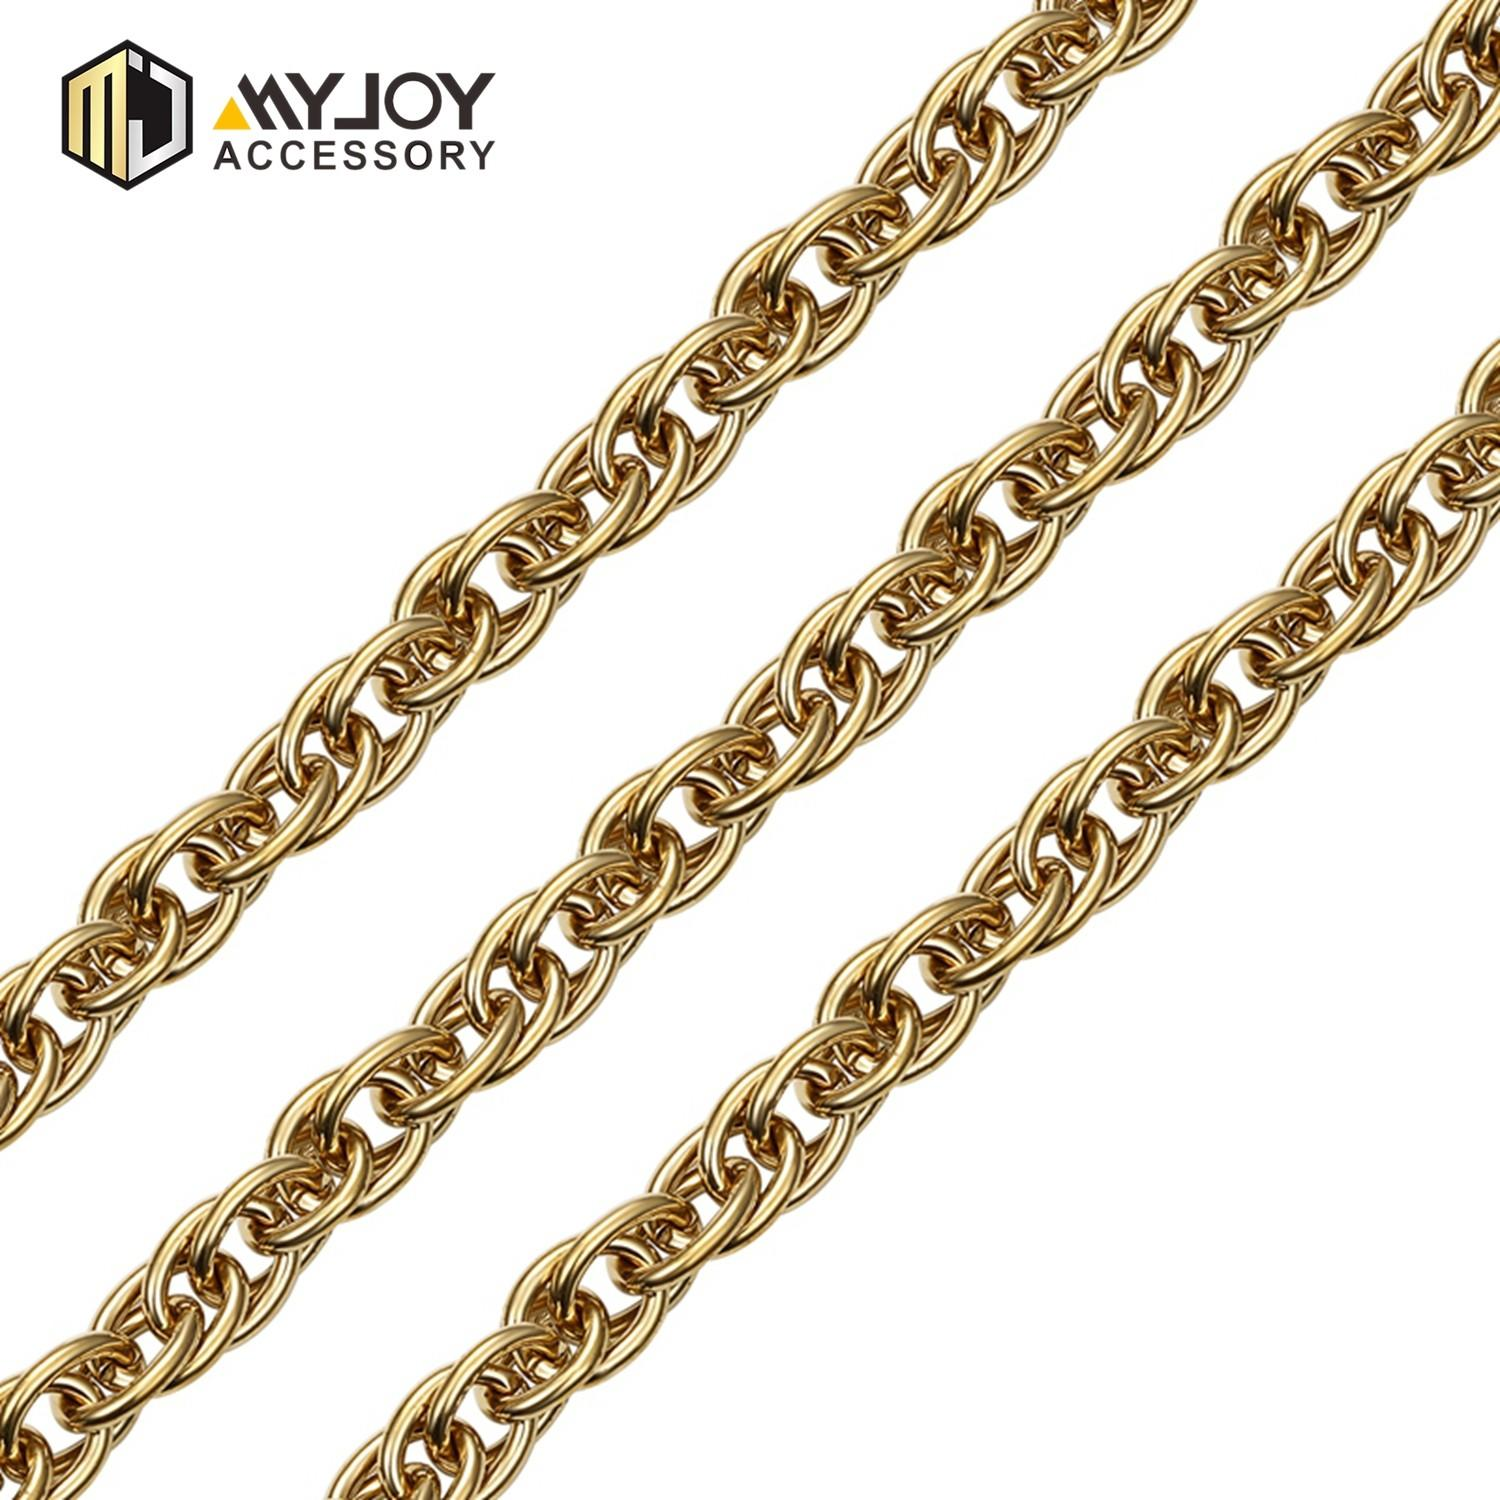 MYJOY Latest handbag strap chain stylish for handbag-3